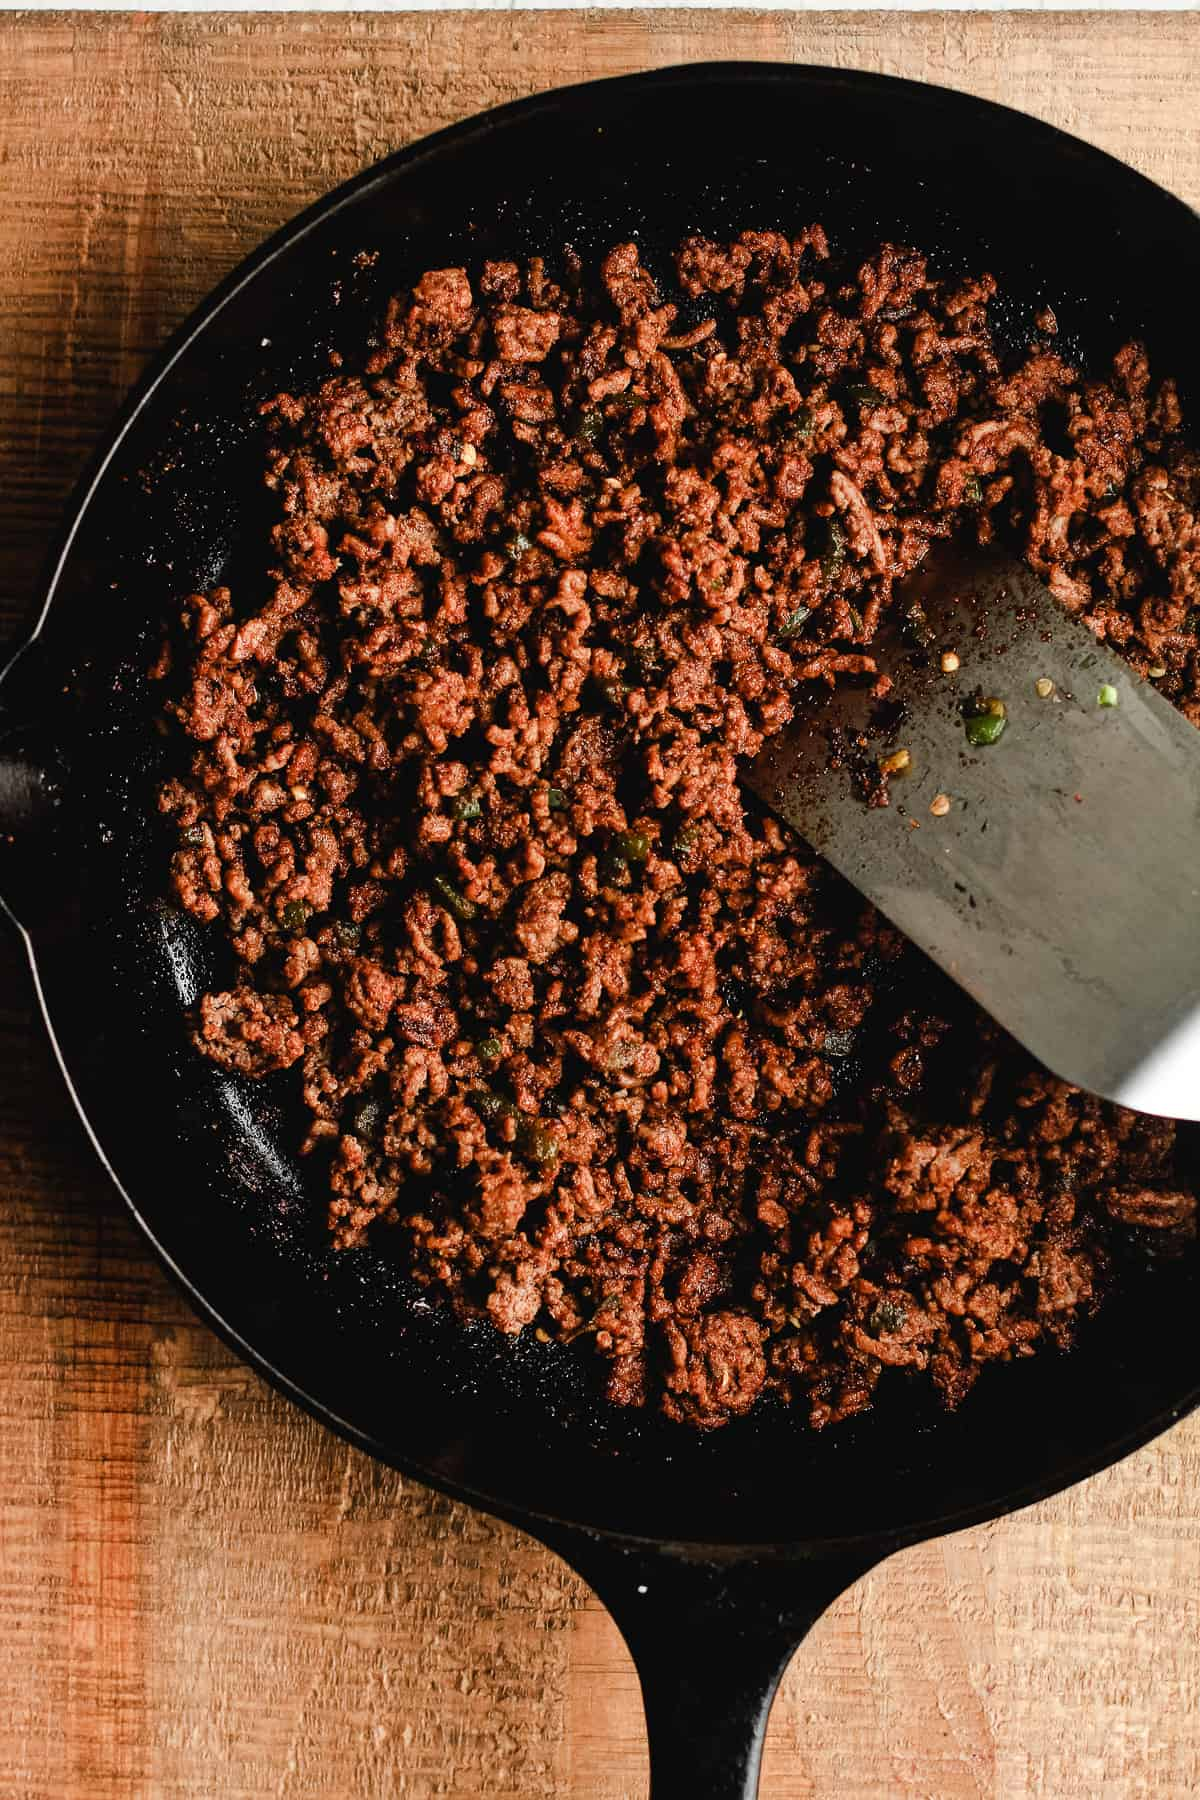 Cast iron skillet with cooked taco meat.